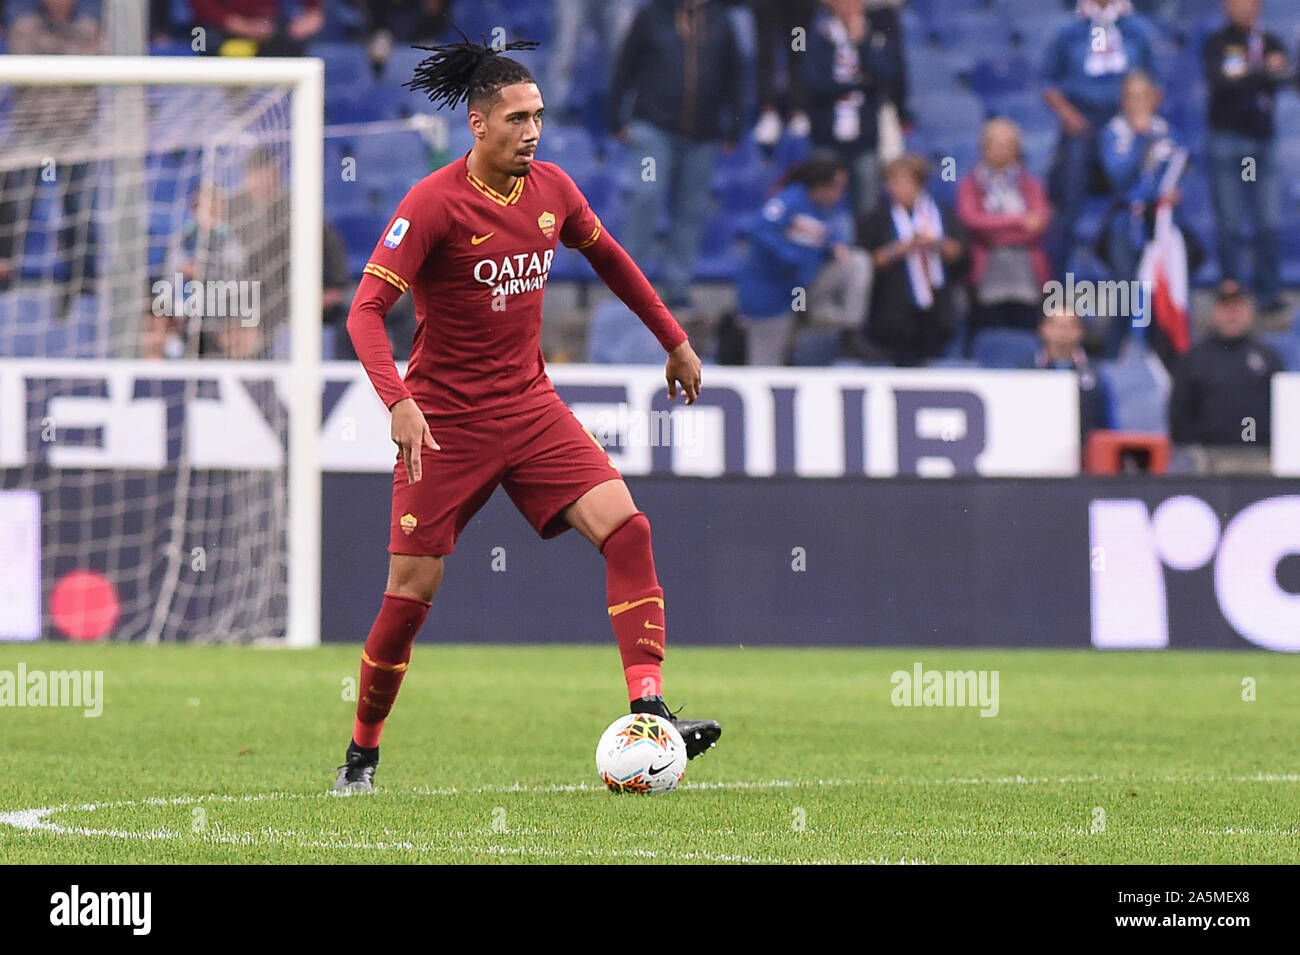 Chris Smalling Roma During Sampdoria Vs As Roma Genova Italy 20 Oct 2019 Soccer Italian Soccer Serie A Men Championship Stock Photo Alamy